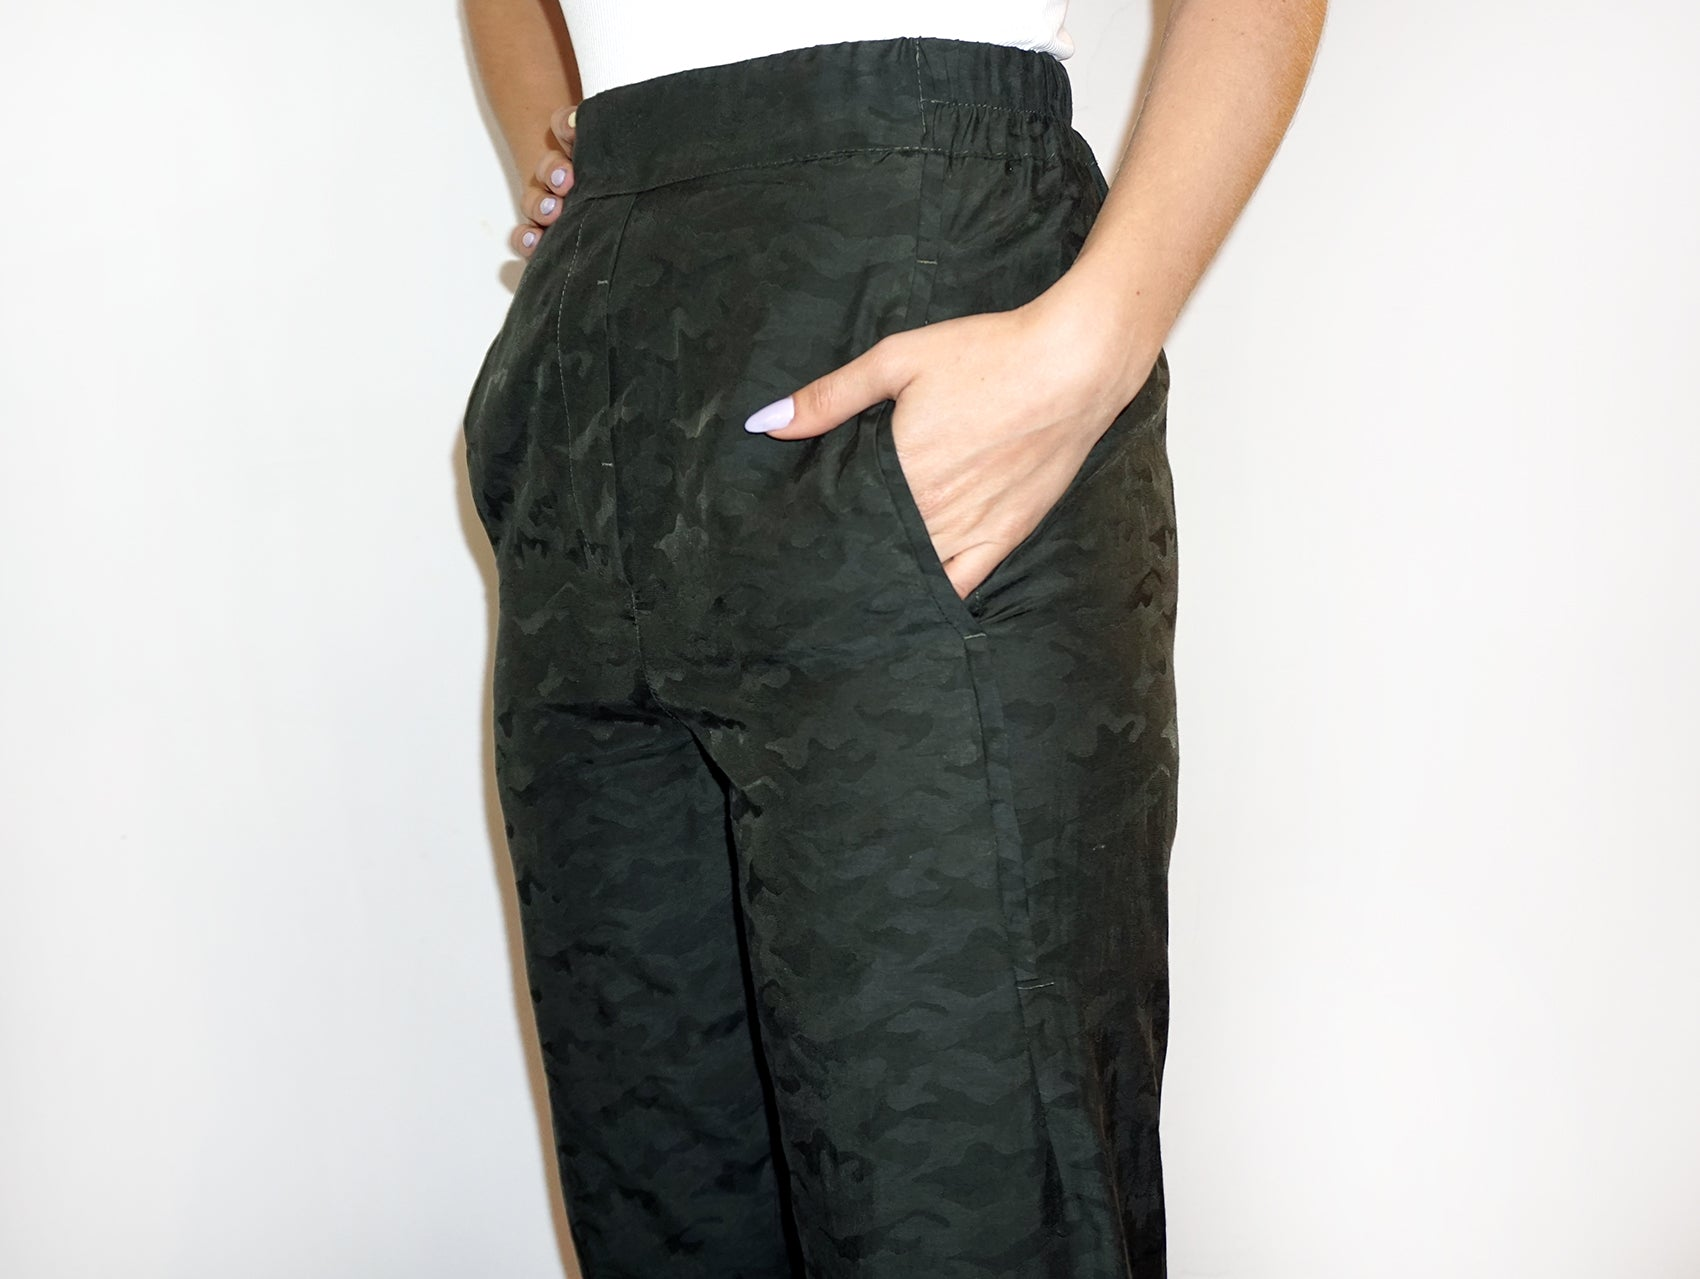 MAX Pants - olive green - heroic-online